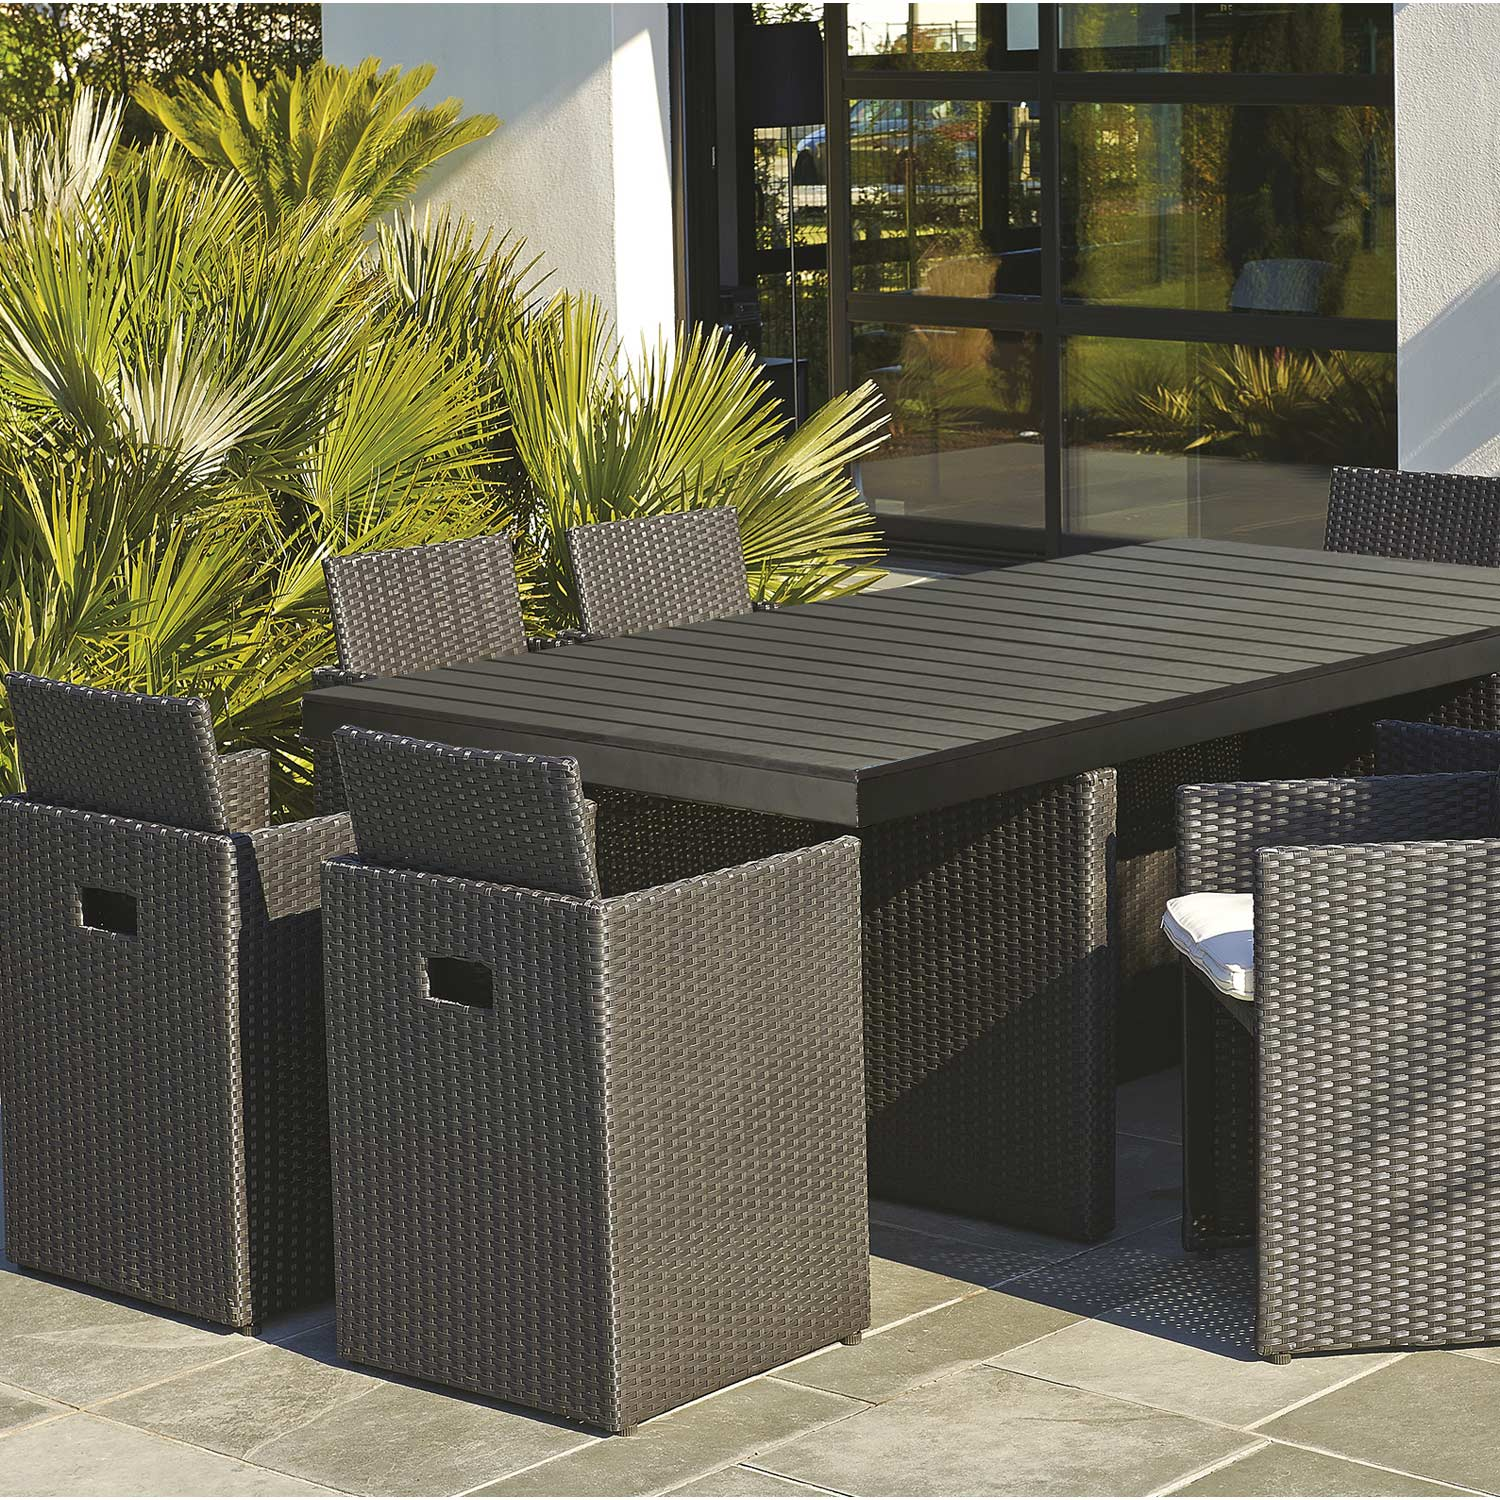 Salon de jardin encastrable r sine tress e noir 1 table 8 fauteuils leroy merlin - Leroy merlin sombrillas de jardin ...